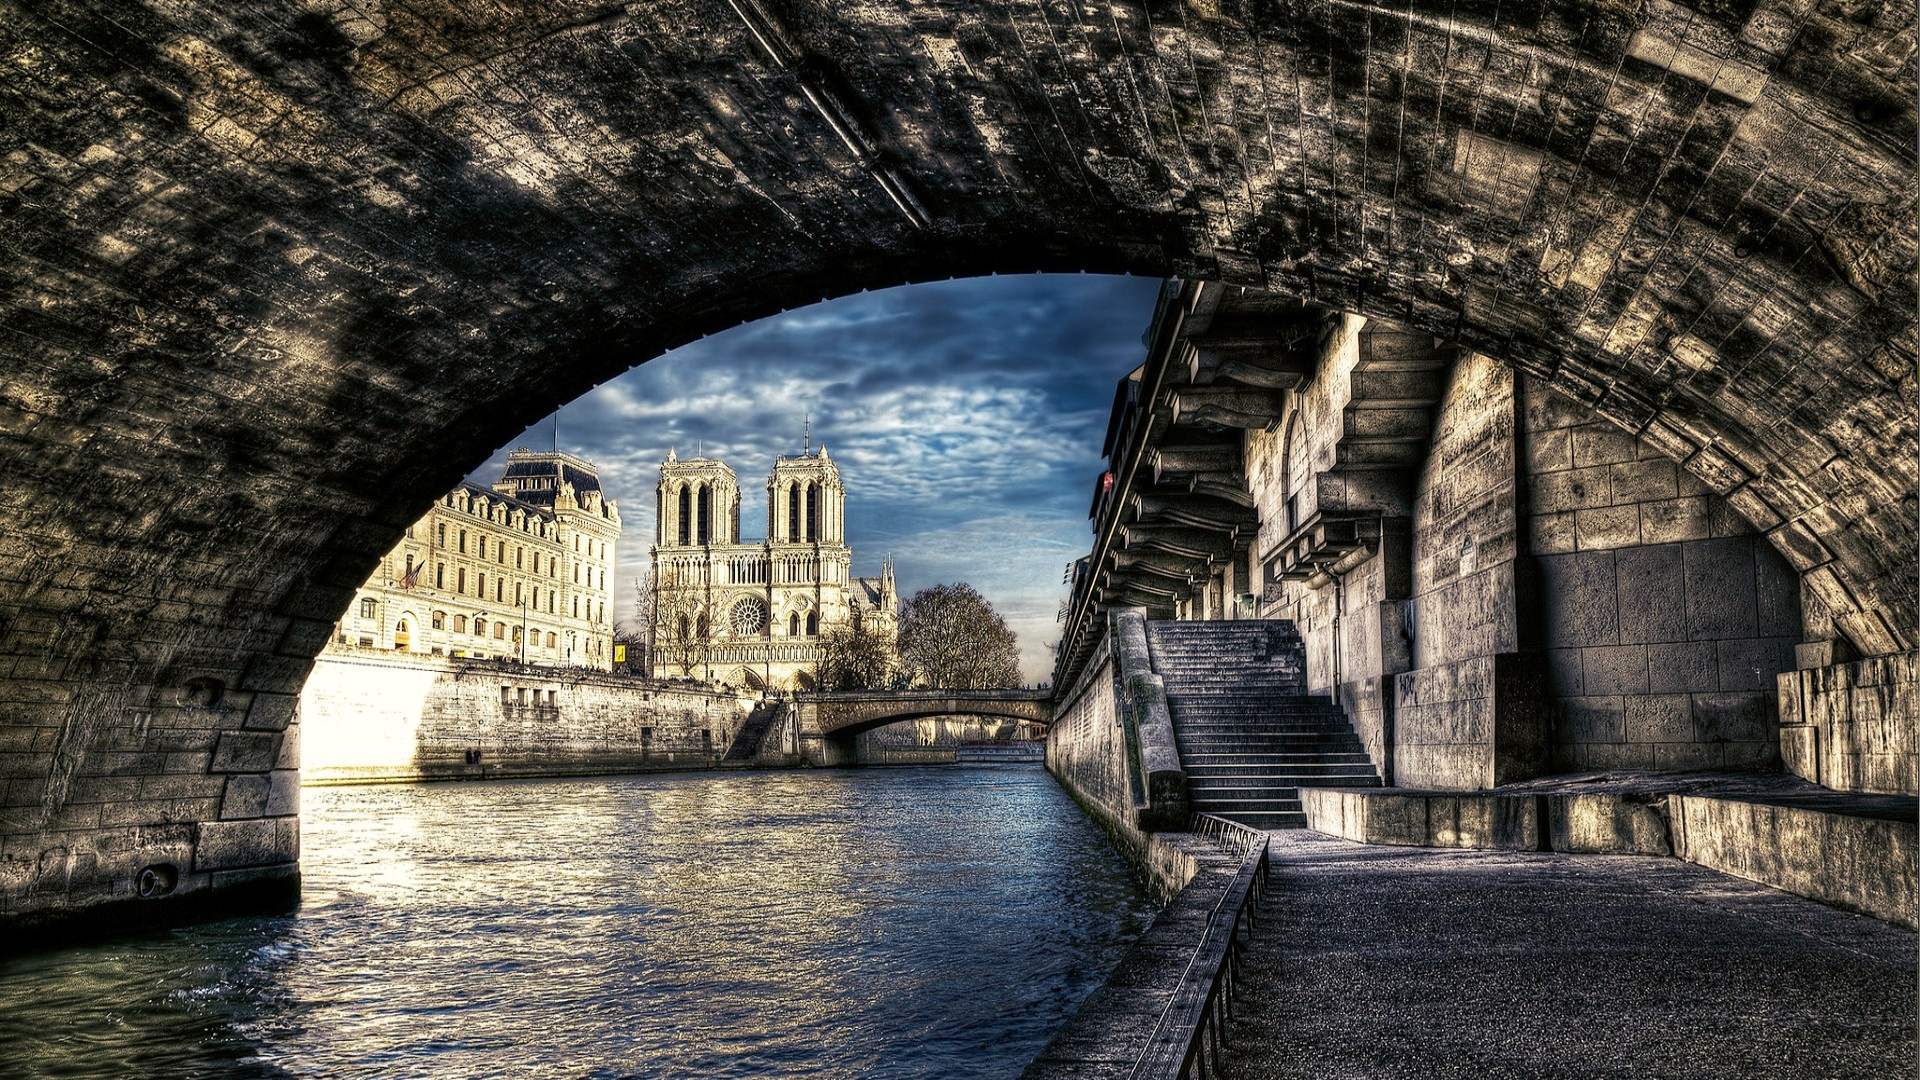 High Resolution Wallpaper: Paris Wallpapers